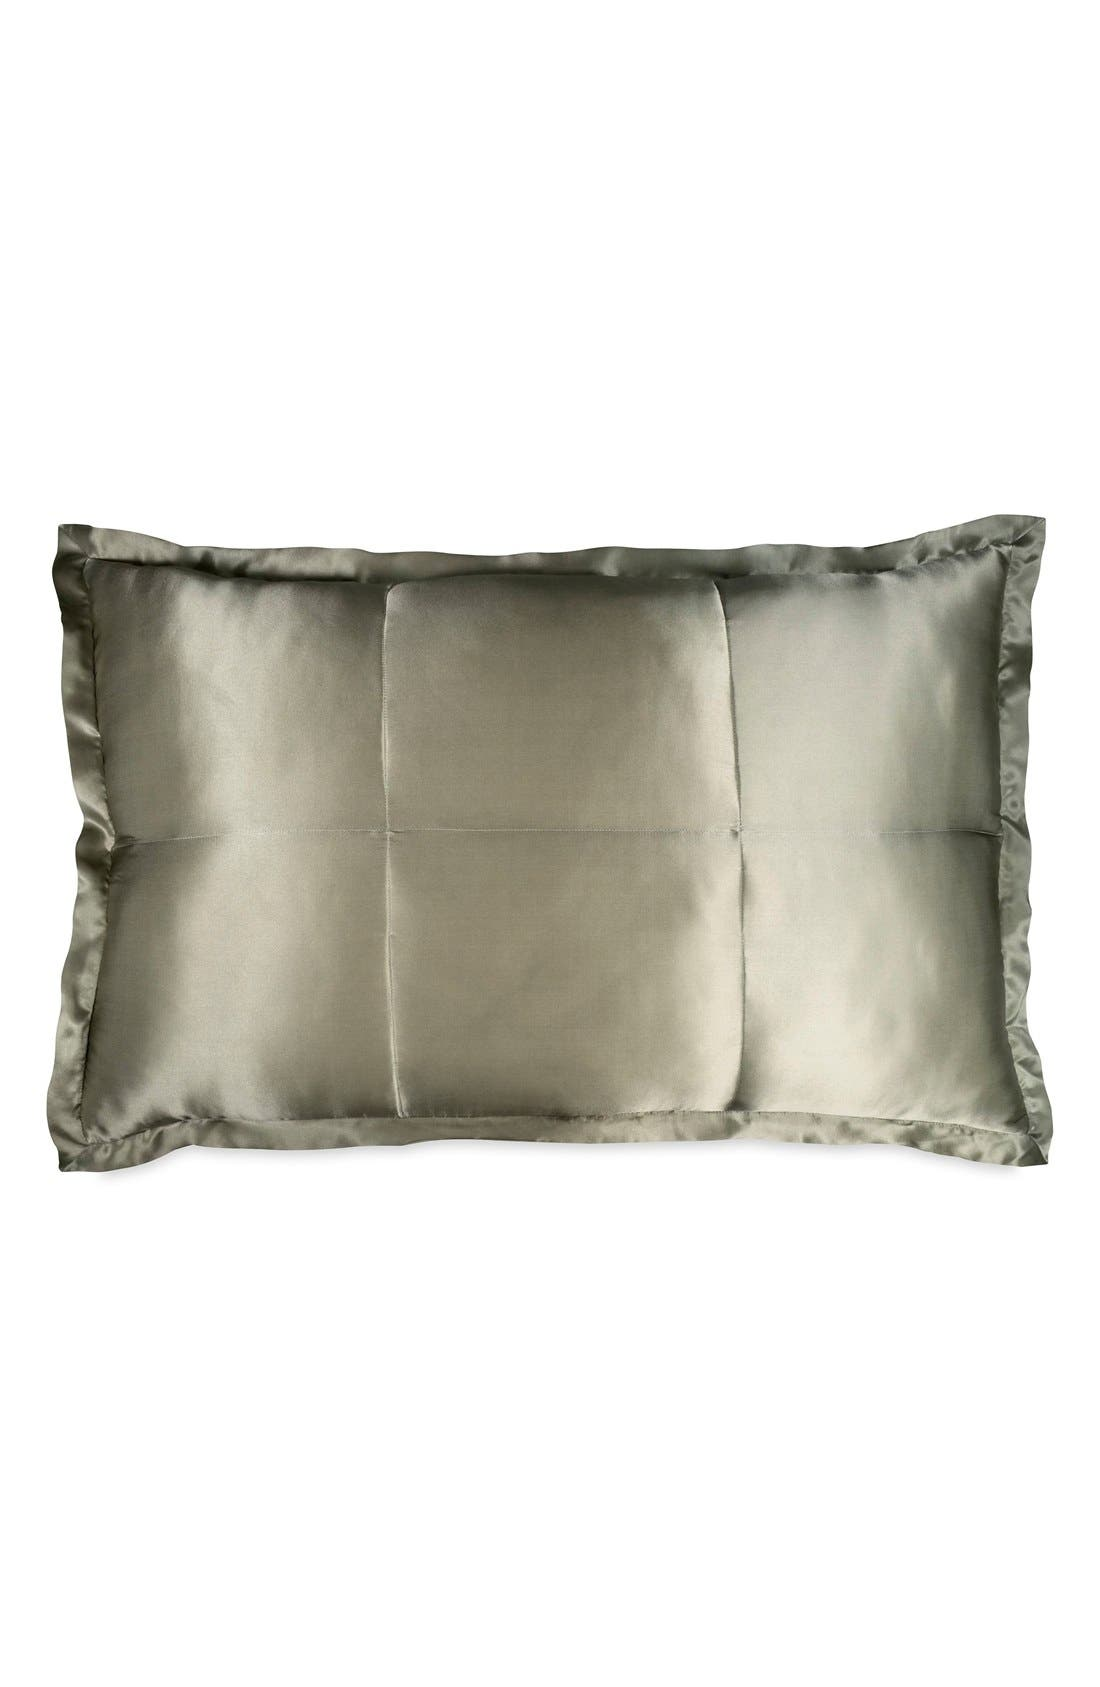 Donna Karan Collection 'Exhale' Quilted Silk Charmeuse Sham,                             Main thumbnail 1, color,                             Moss